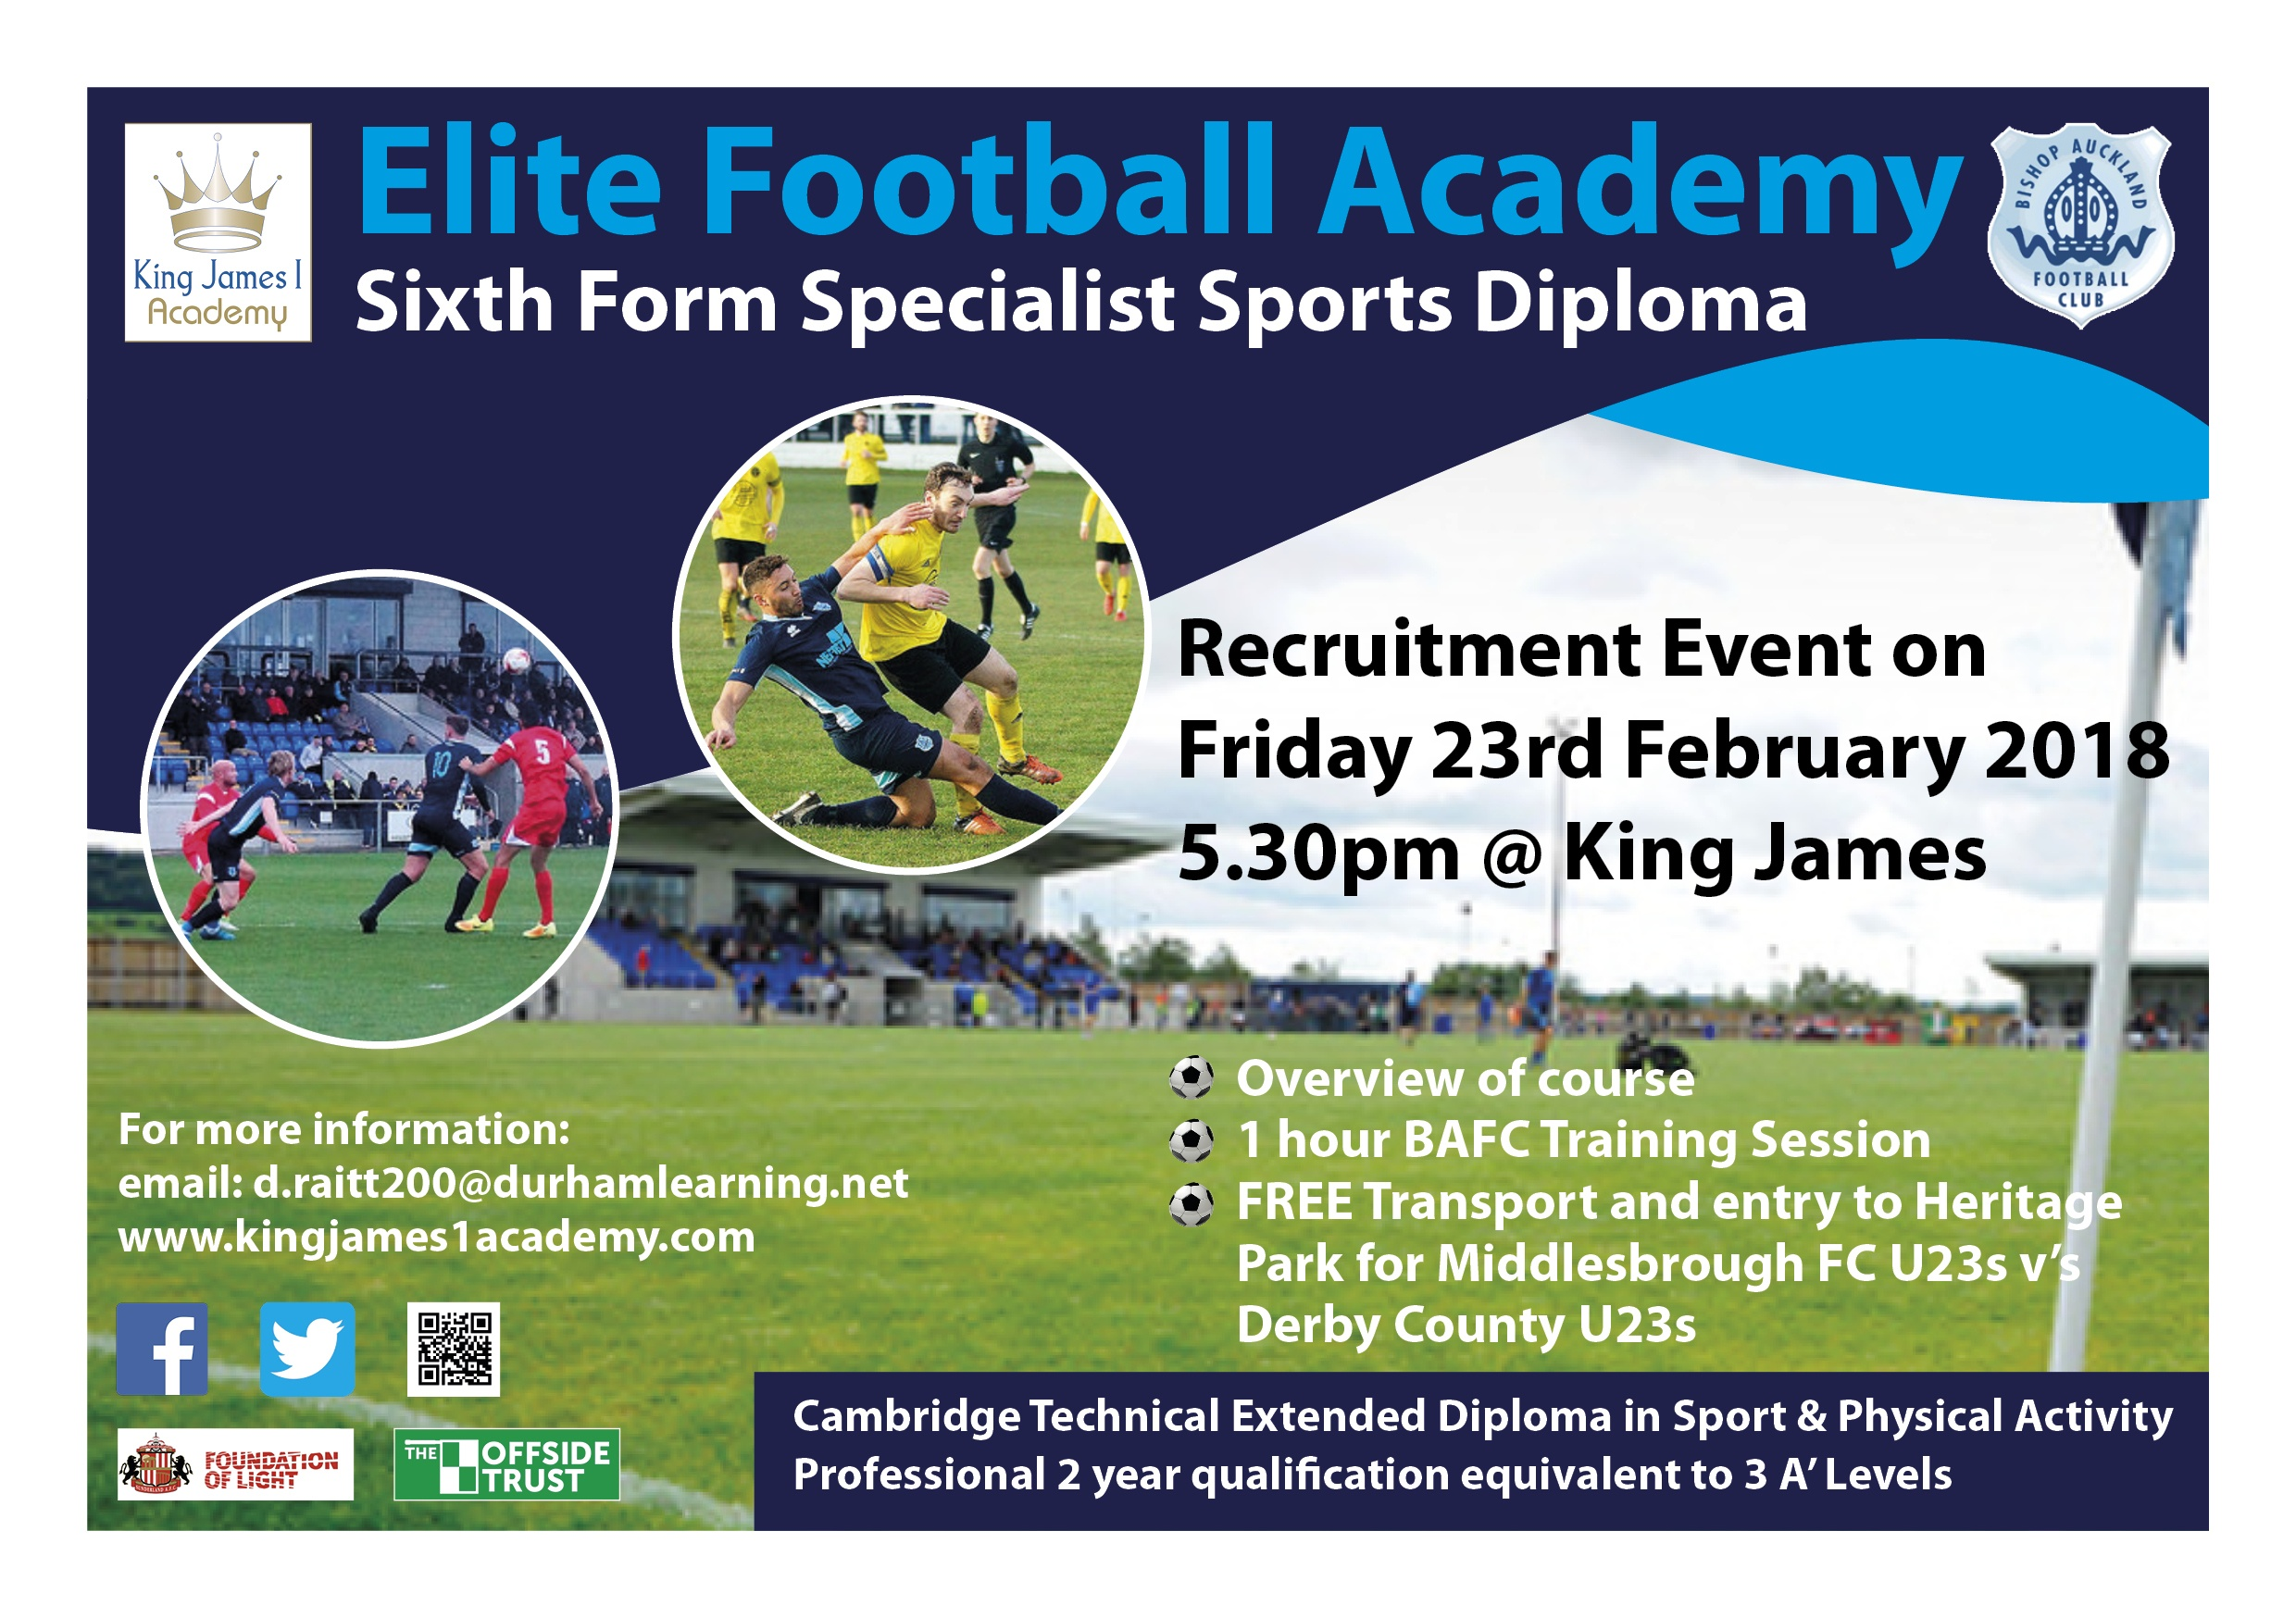 Academy Recruiting Footballers for Elite Course